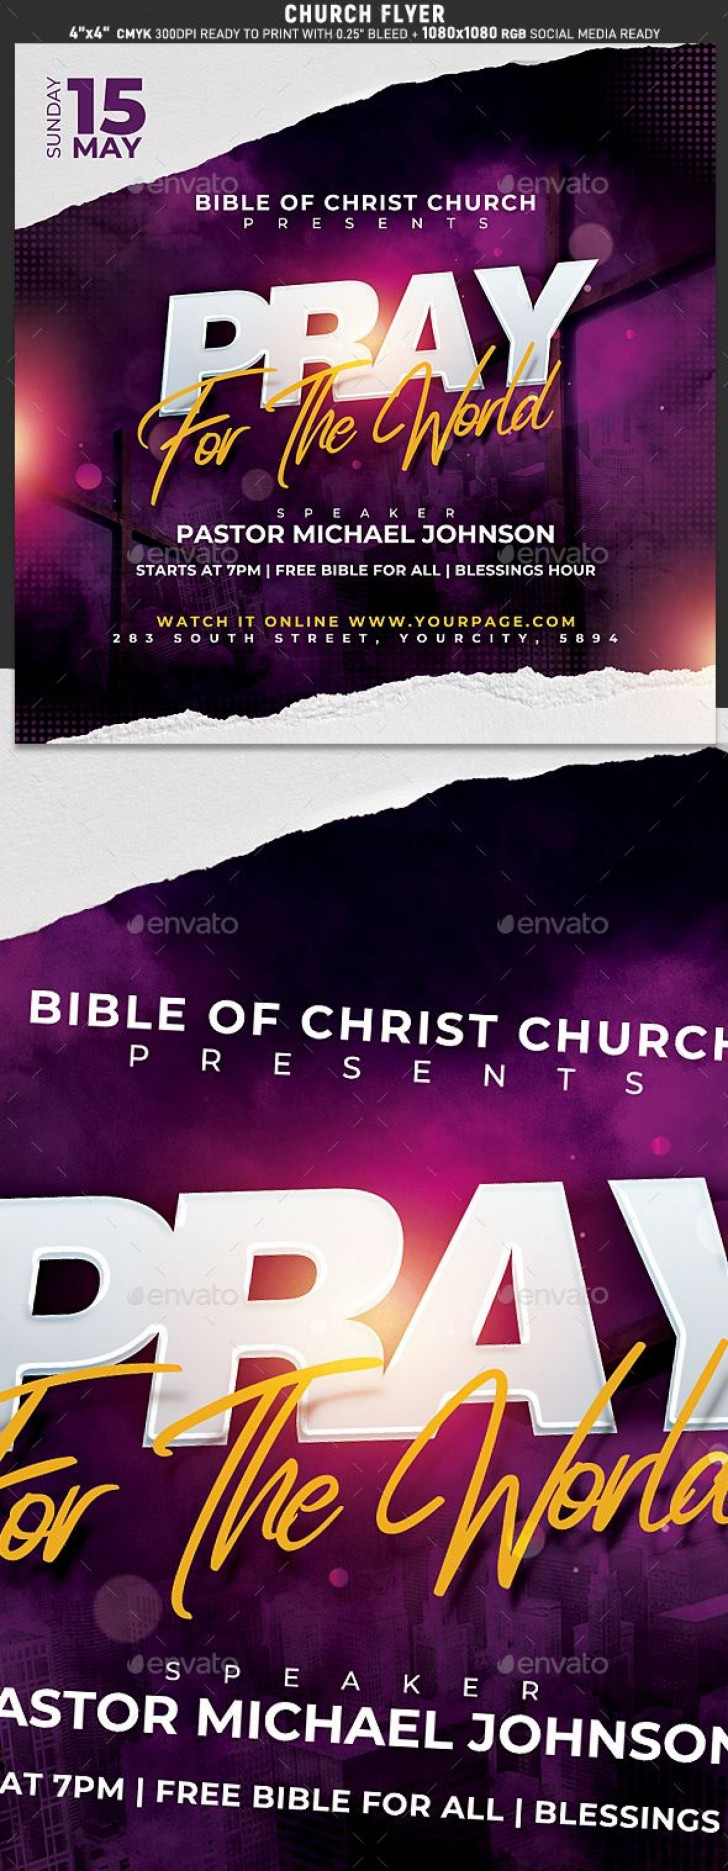 009 Marvelou Church Flyer Template Free Printable High Def  Event728